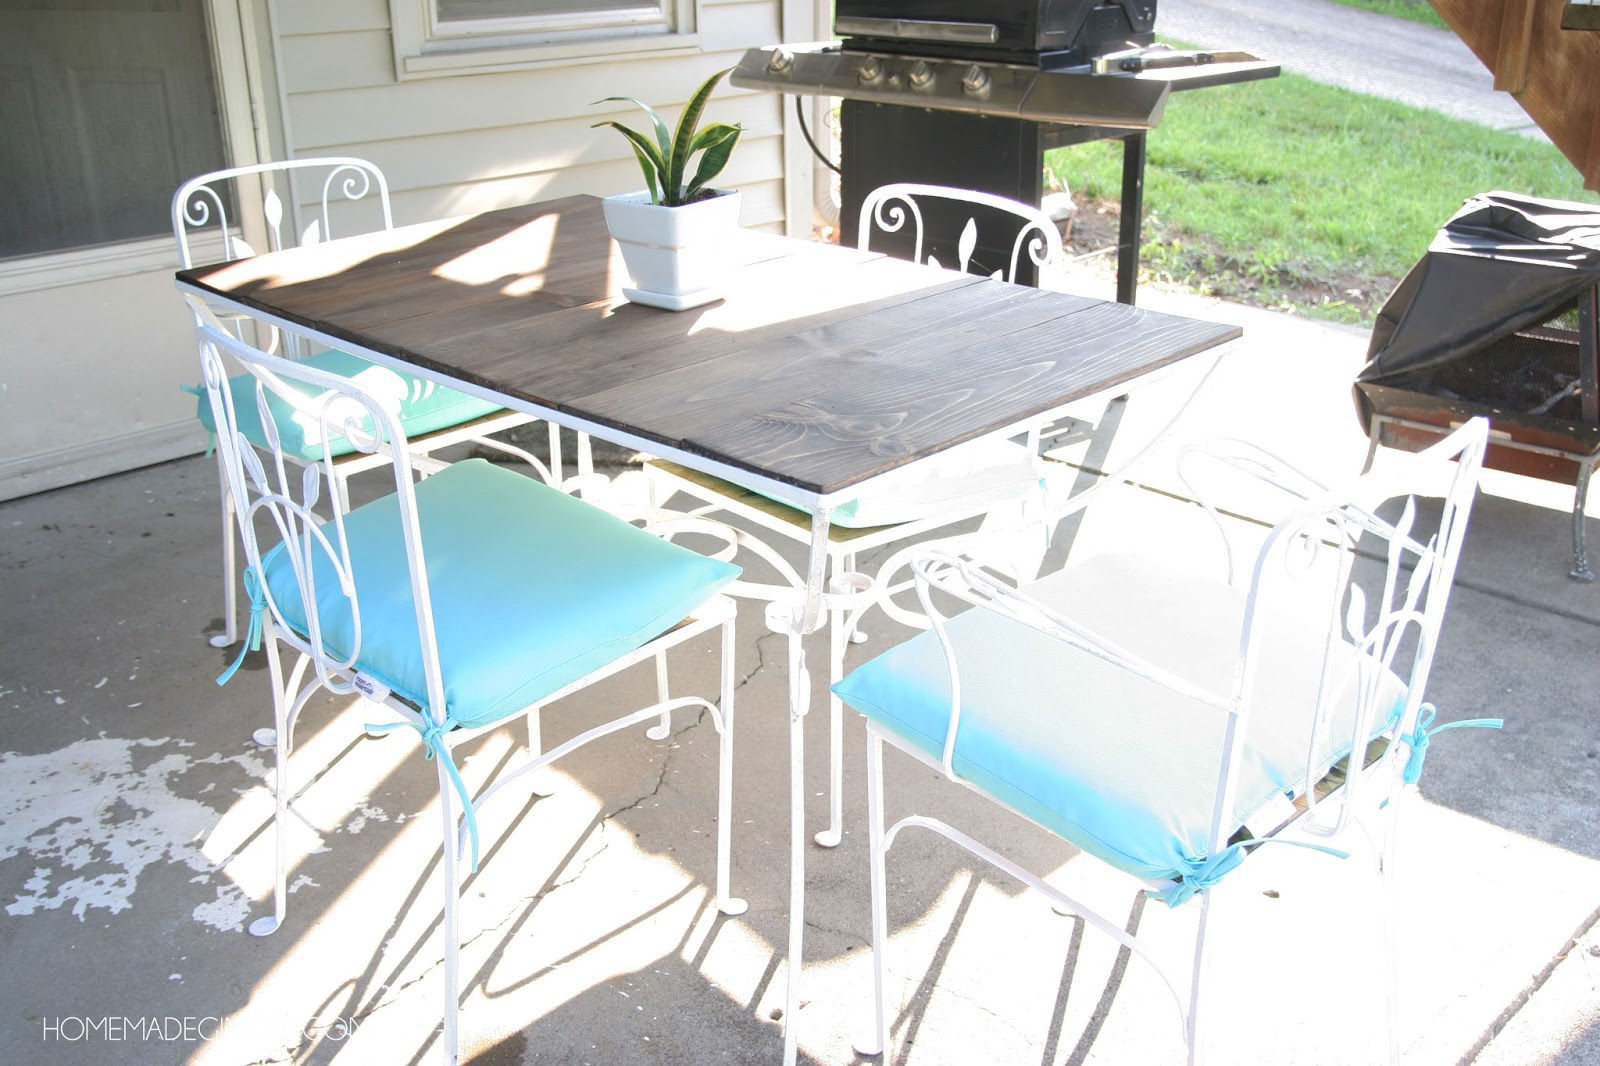 Beautiful Vintage patio table makeover Amazing transformation